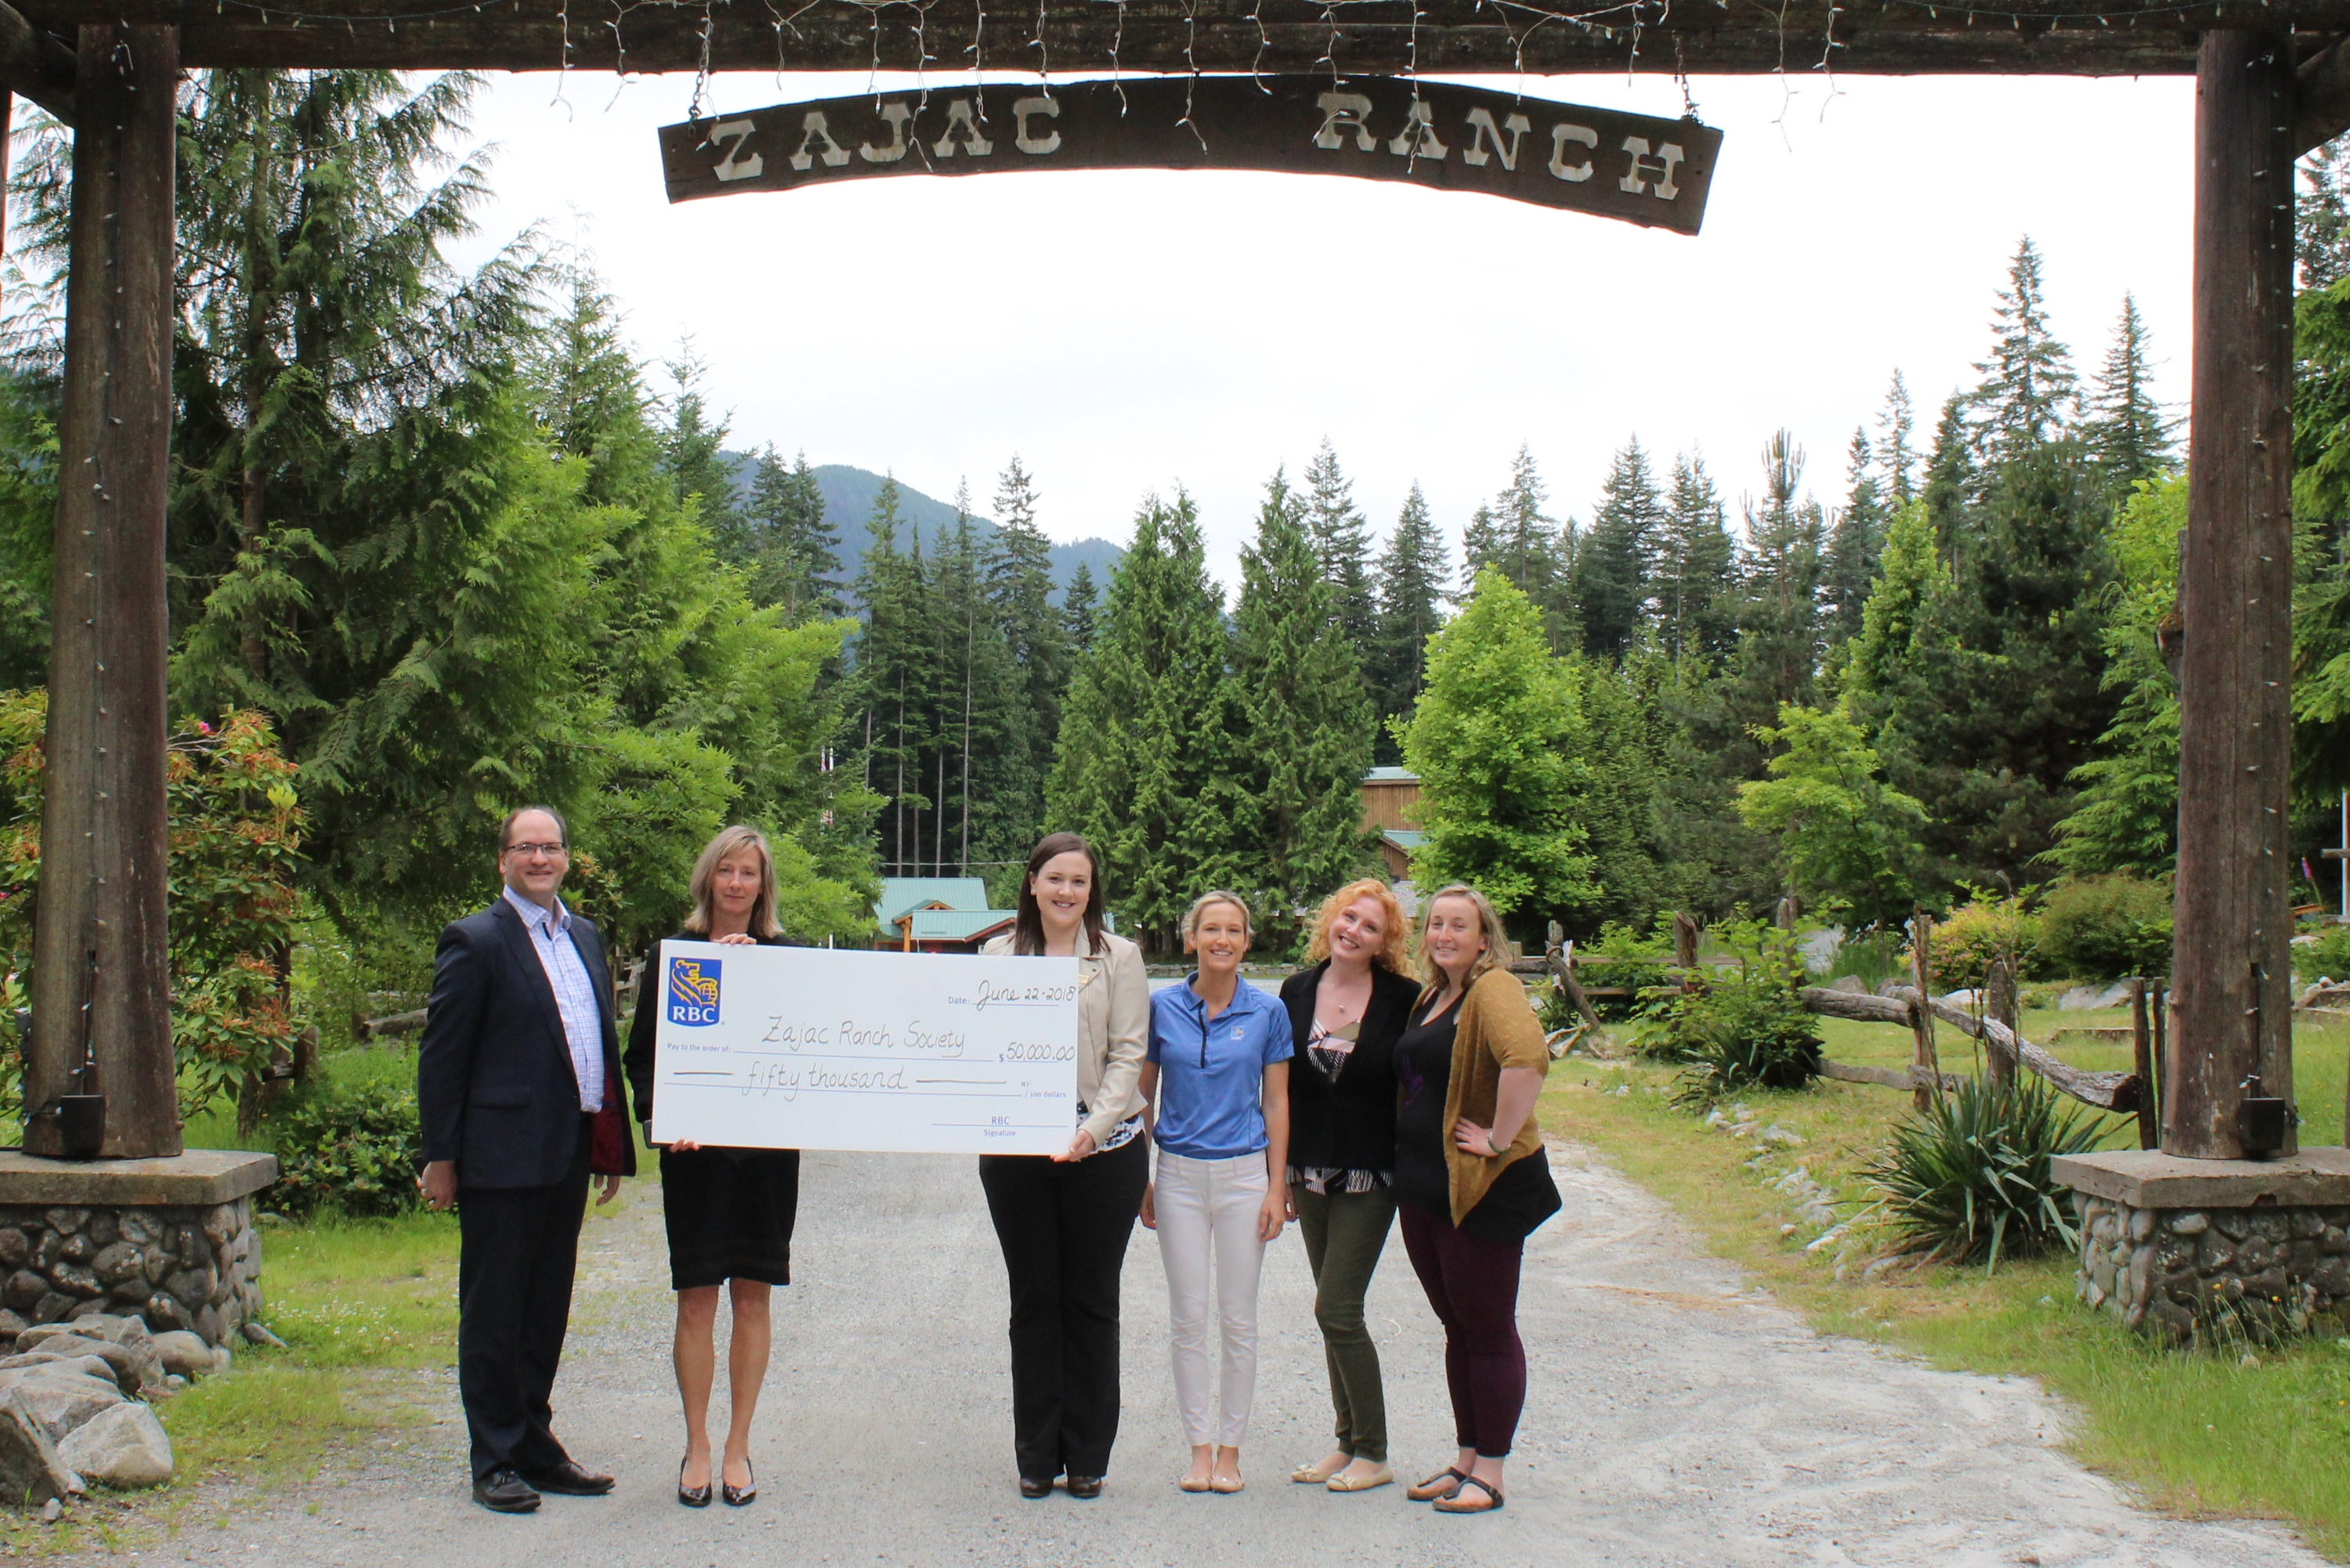 RBC and Zajac Ranch representatives with giant cheque